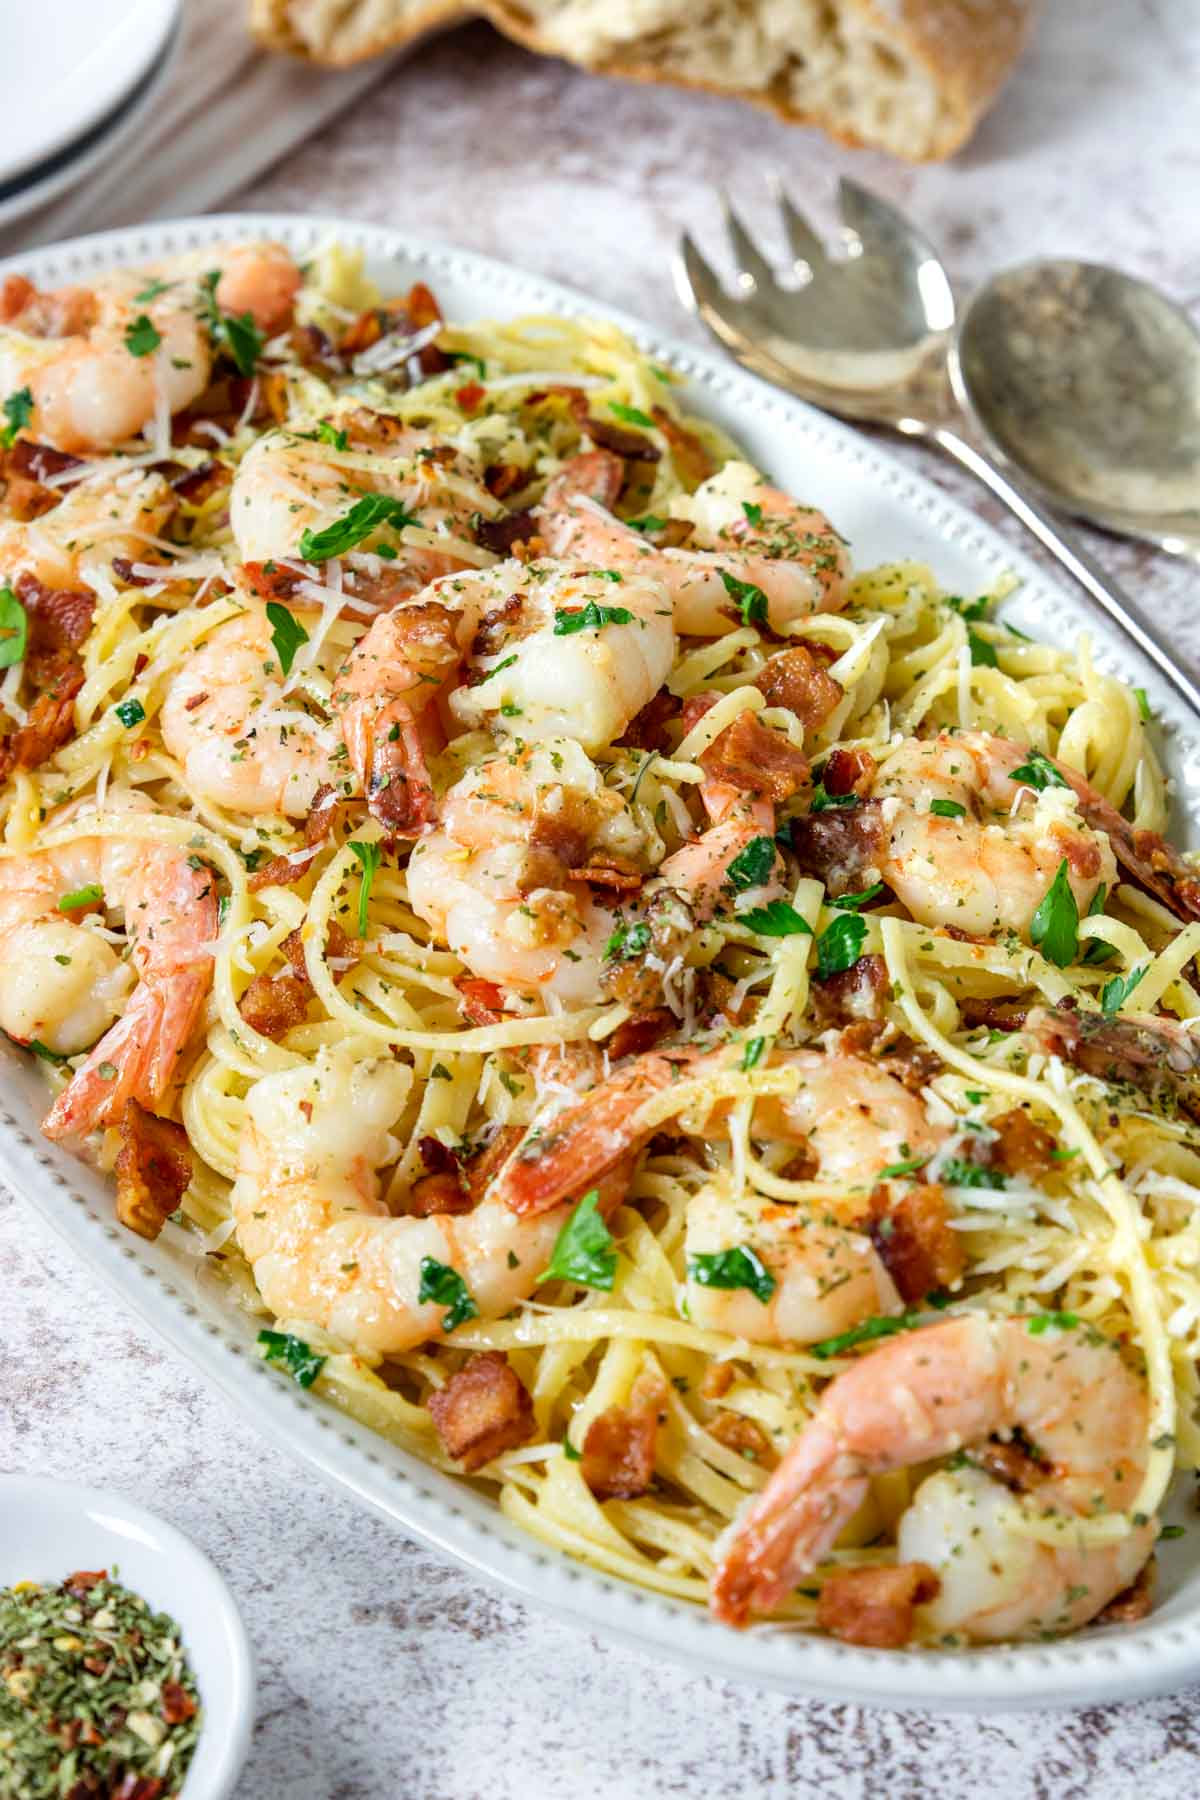 a platter with shrimp carbonara, table bread and serving utensils